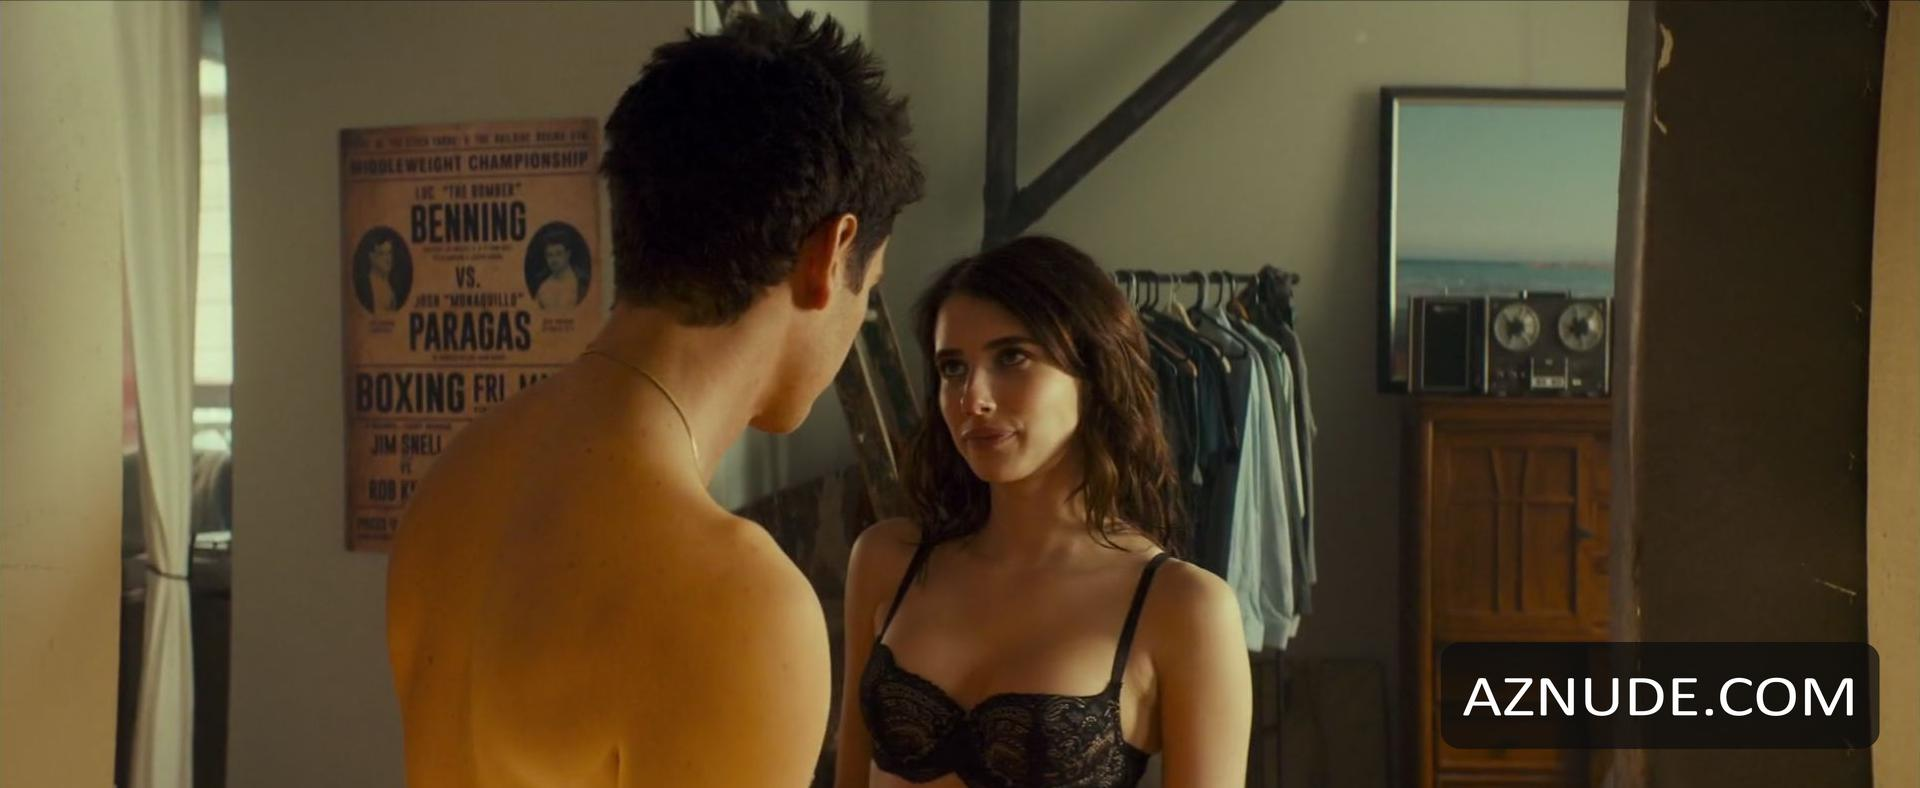 Emma roberts sexy lingerie scene from little italy new pictures